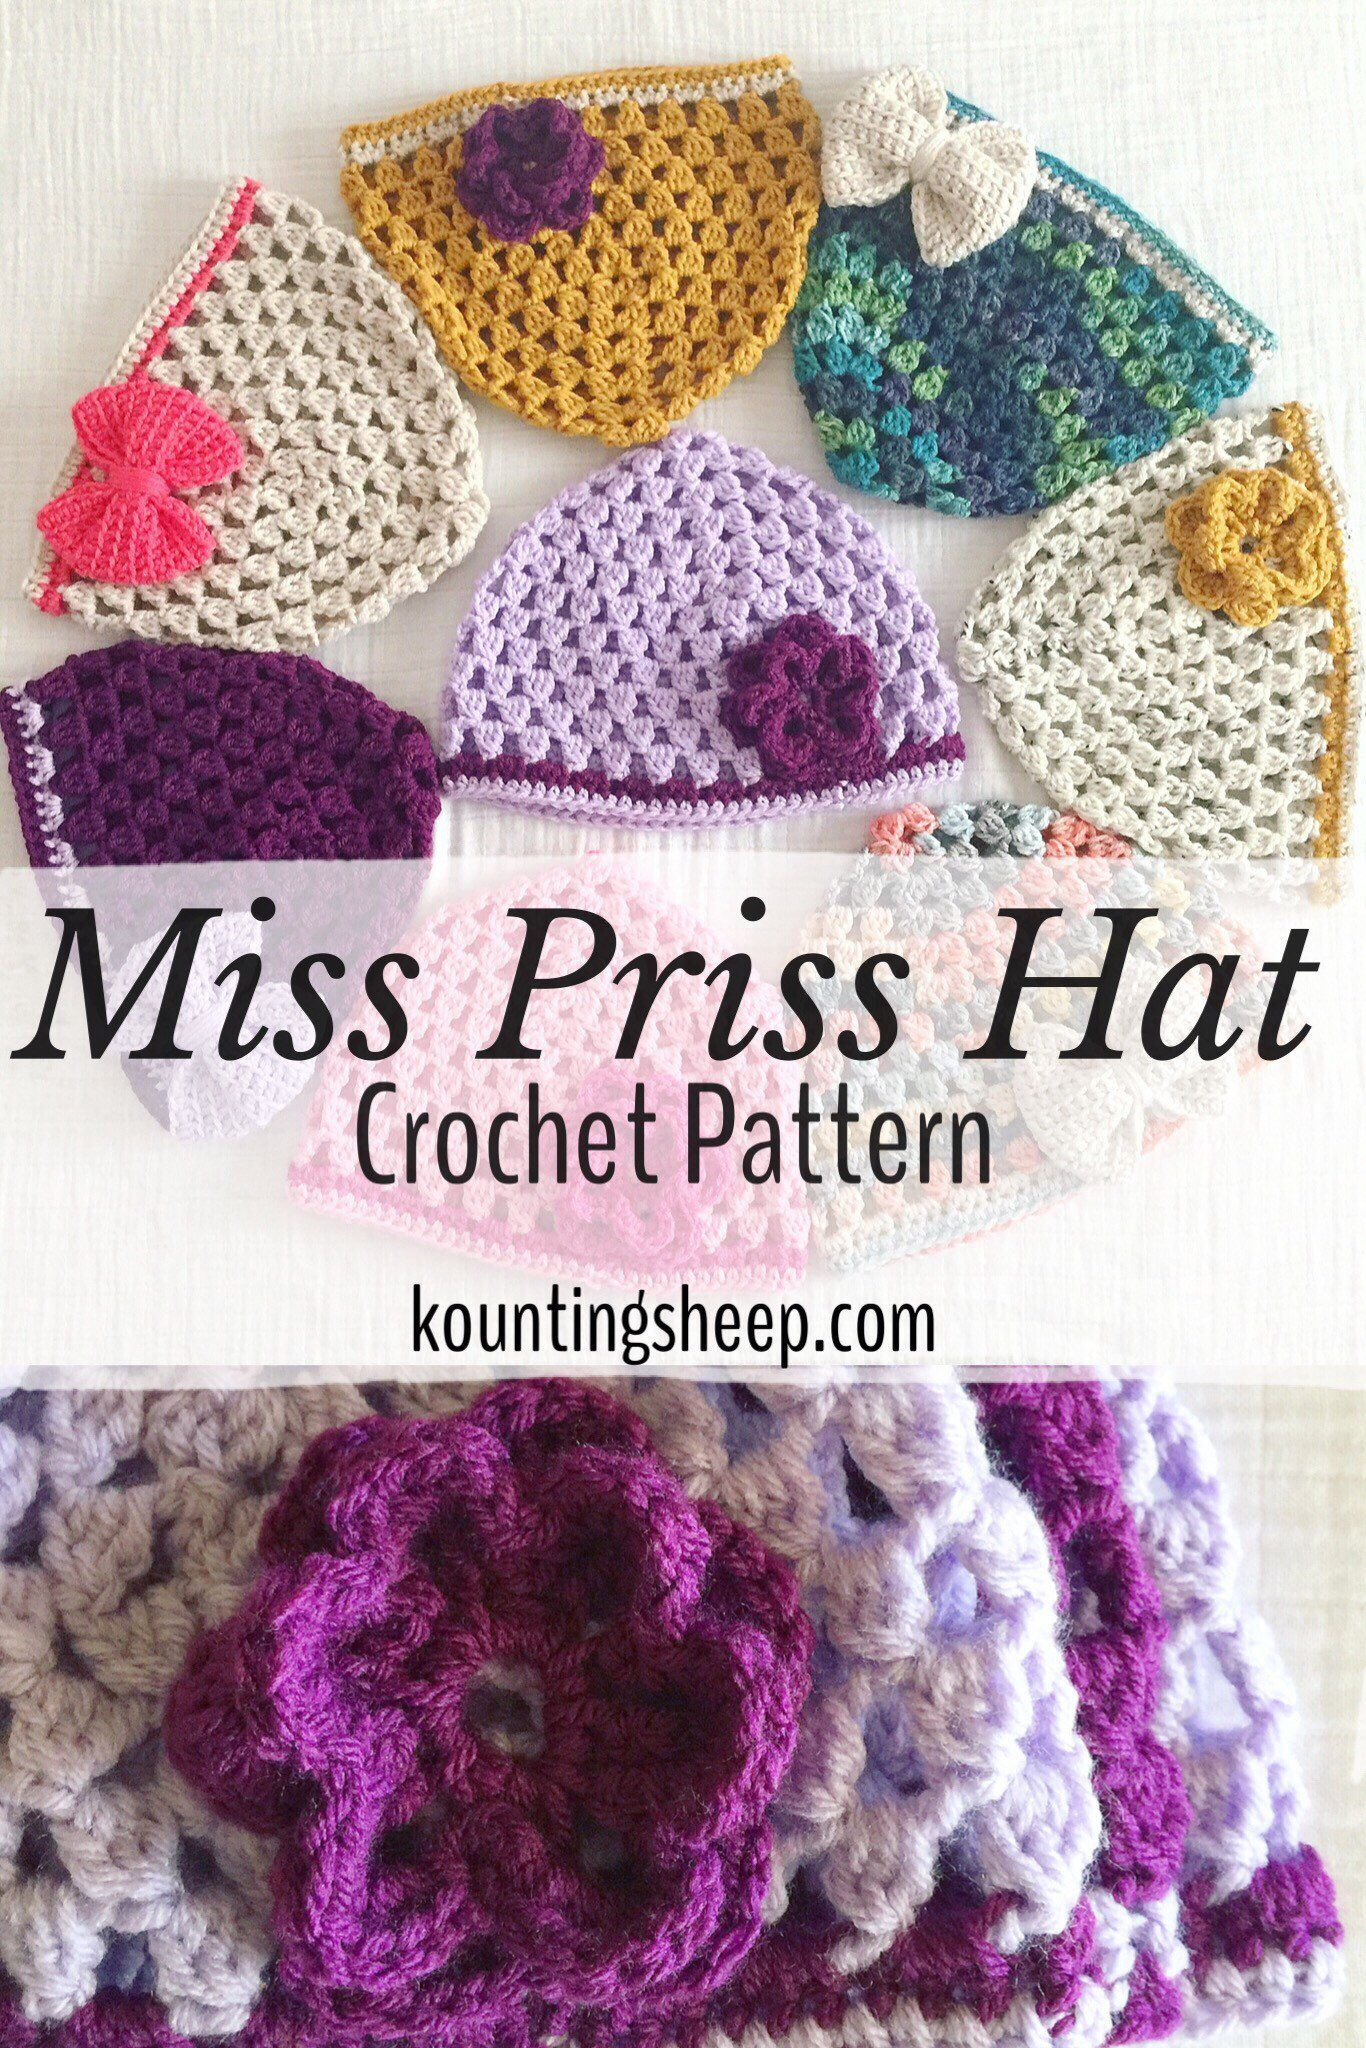 Miss Priss Hat Pattern Pdf Digital Download Only Crochet Half Double Diagram And On Pinterest In Toddler Child Adult Sizes From My Etsy Shop